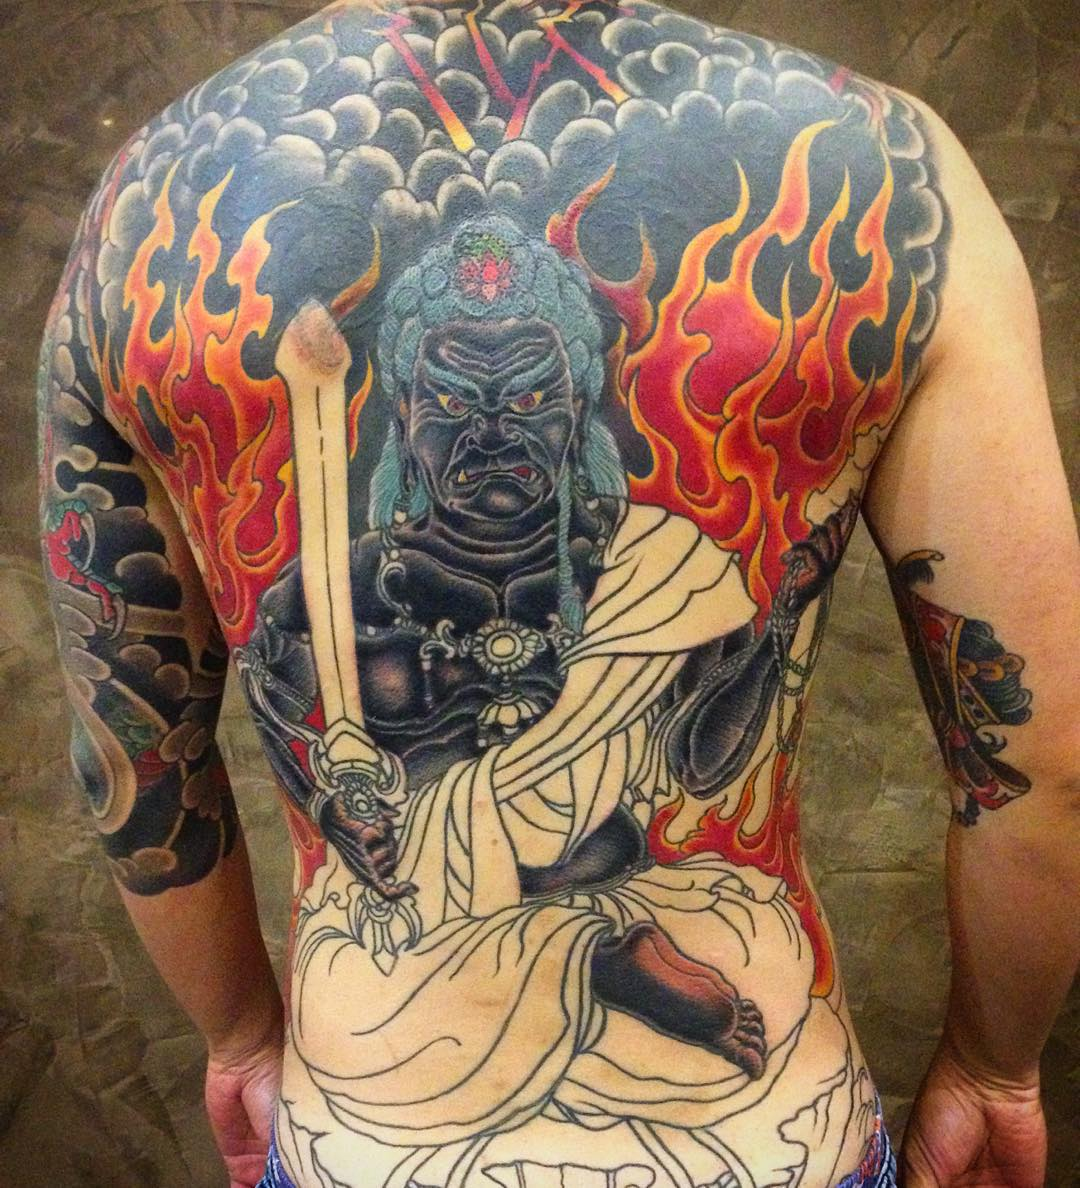 slooowly progressing on this massive Cover-Up project...almost 1/3 of his back i...